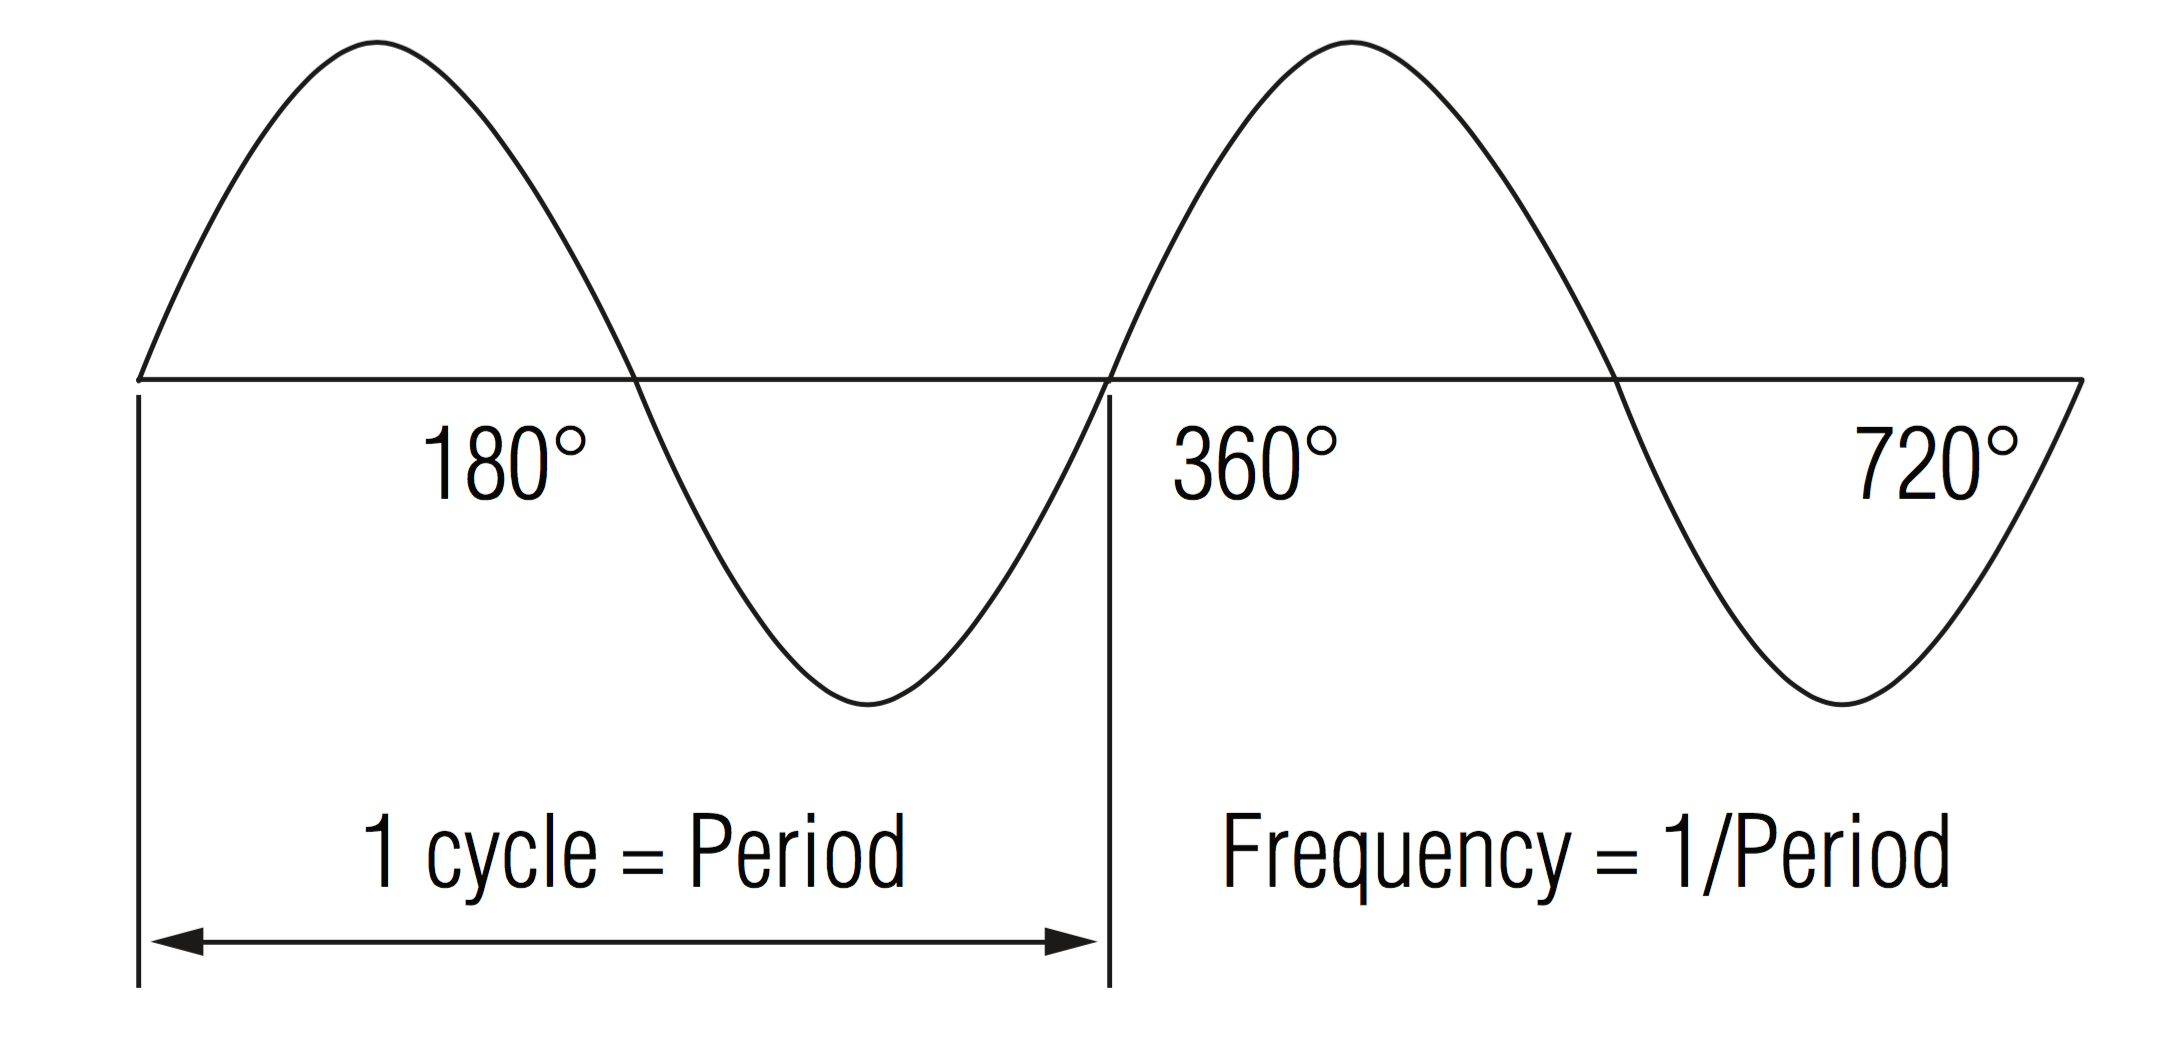 Ring frequency, PF, and CF from Waveform Capture_06